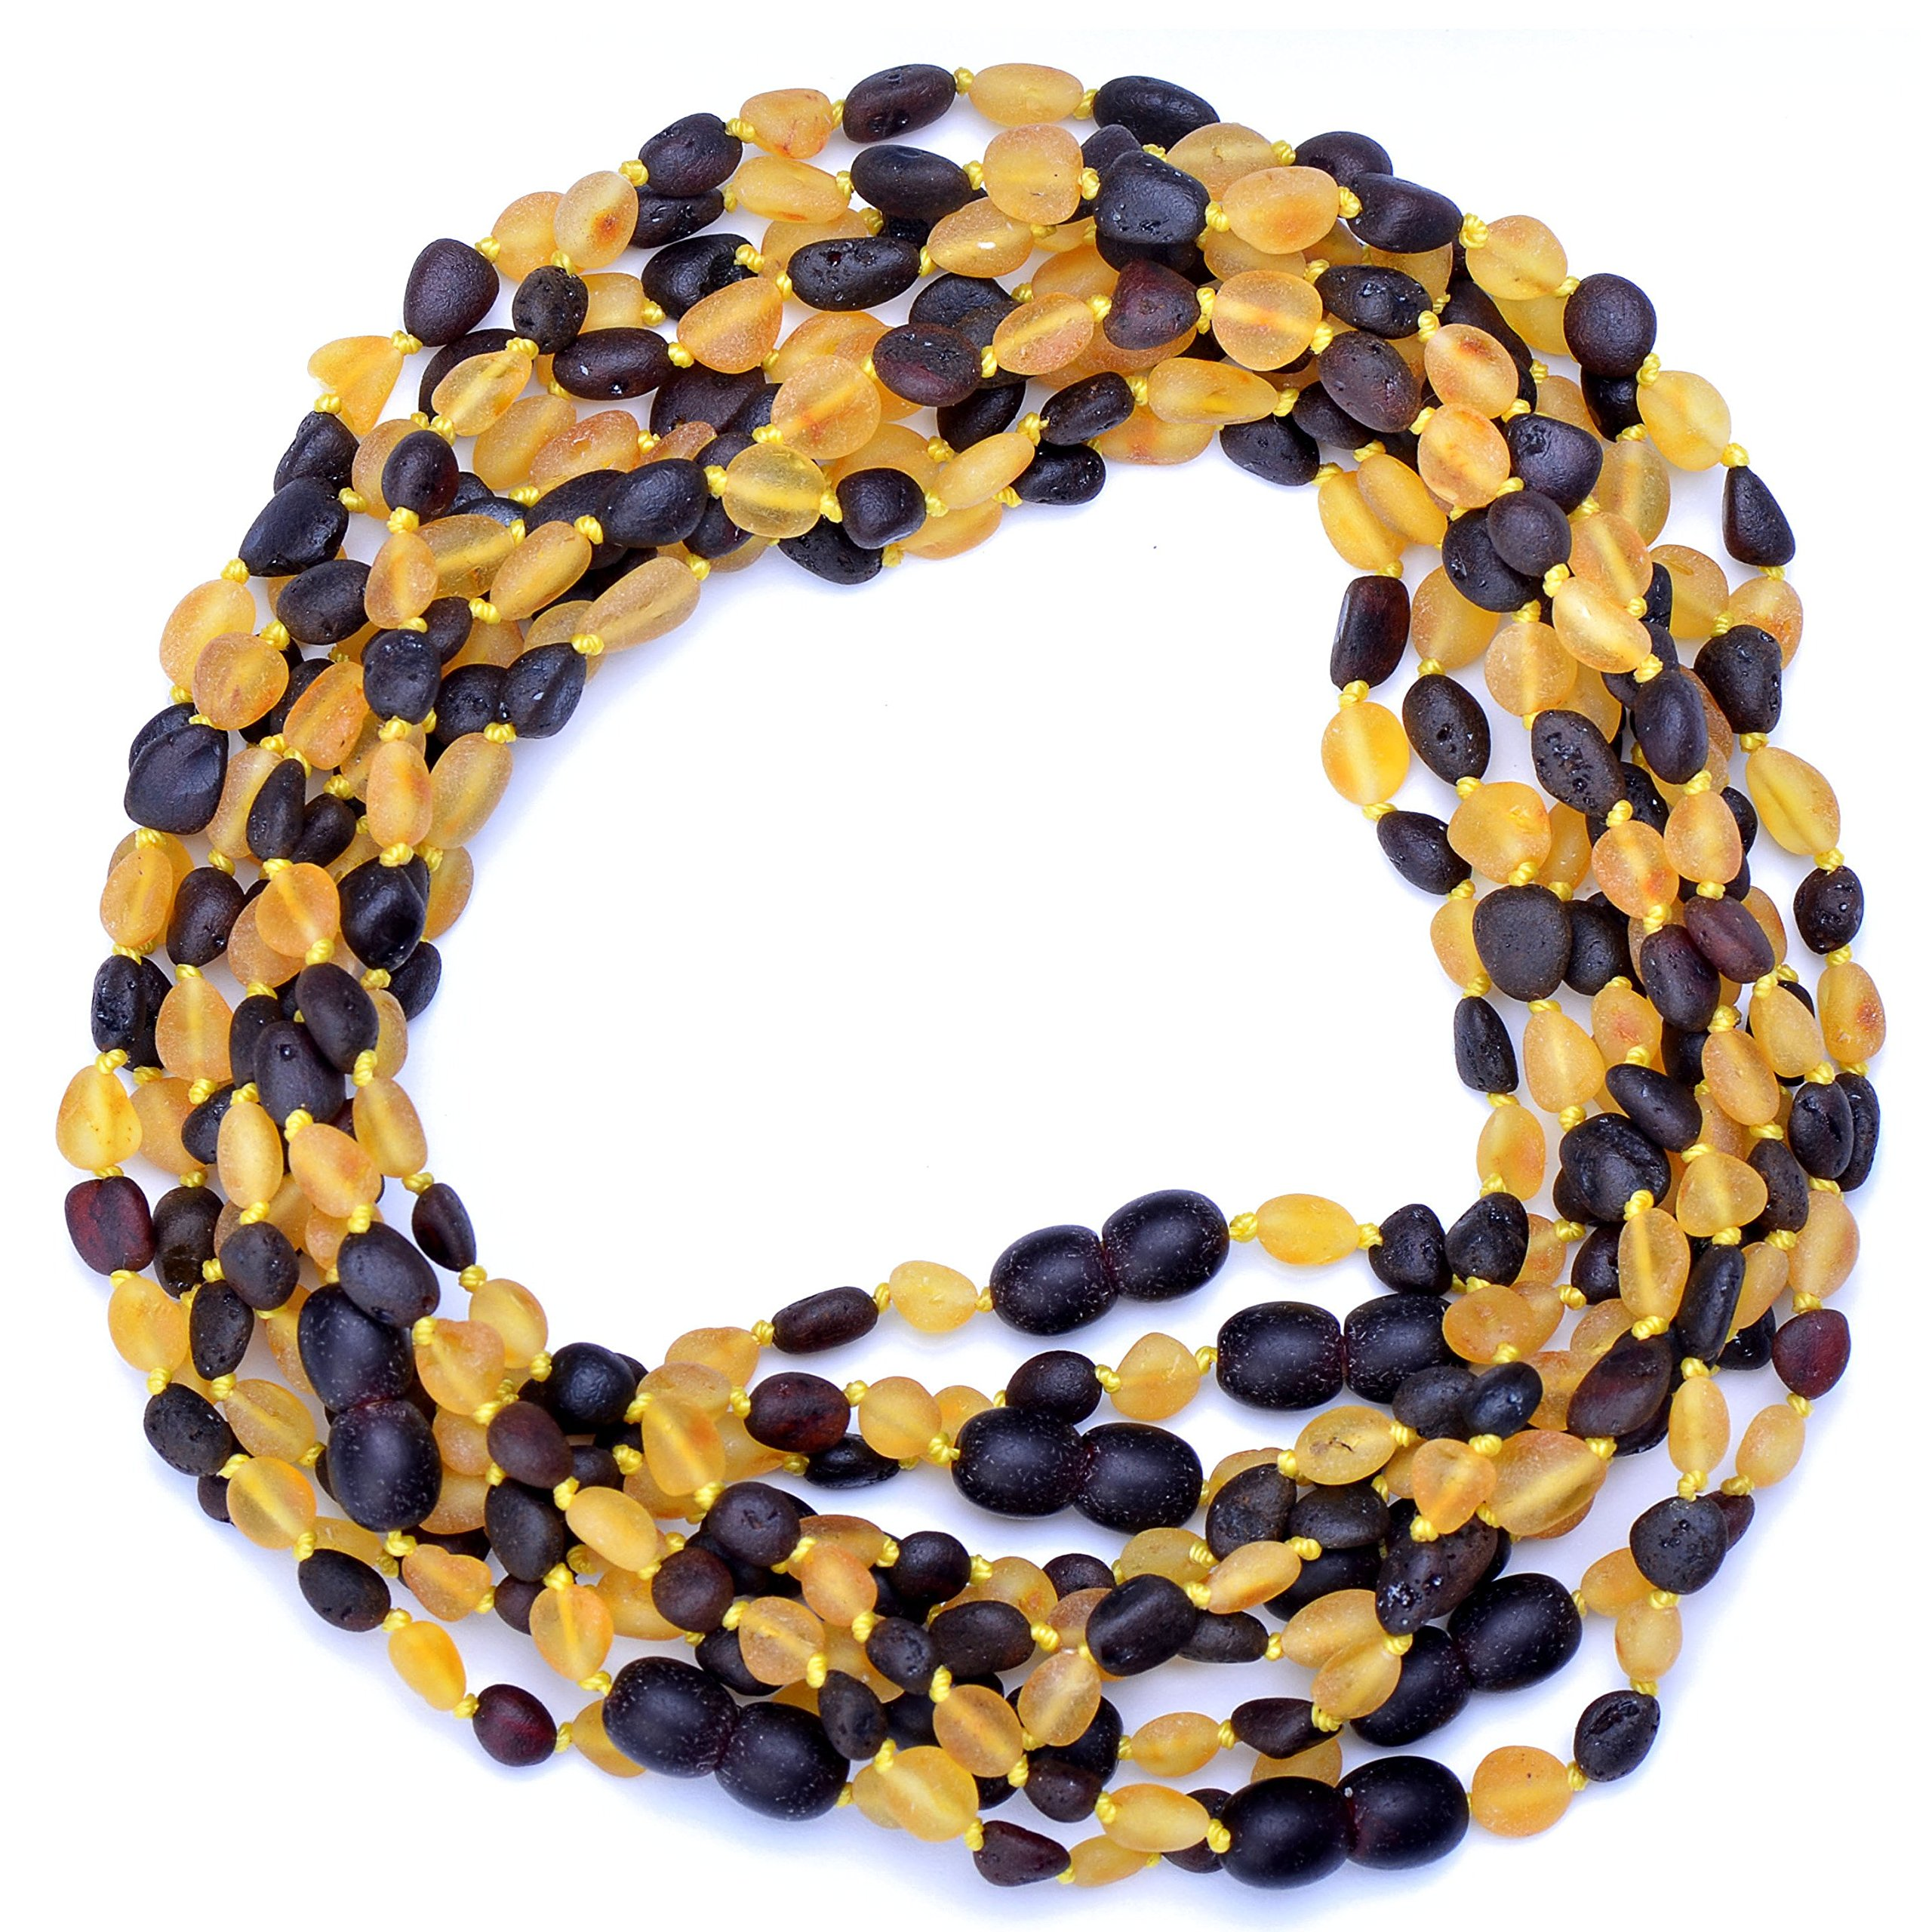 Amber Wholesale - 10 Hand Made Baltic Amber Teething Necklaces for Babies - Safety Knotted - Beans Shape - Raw